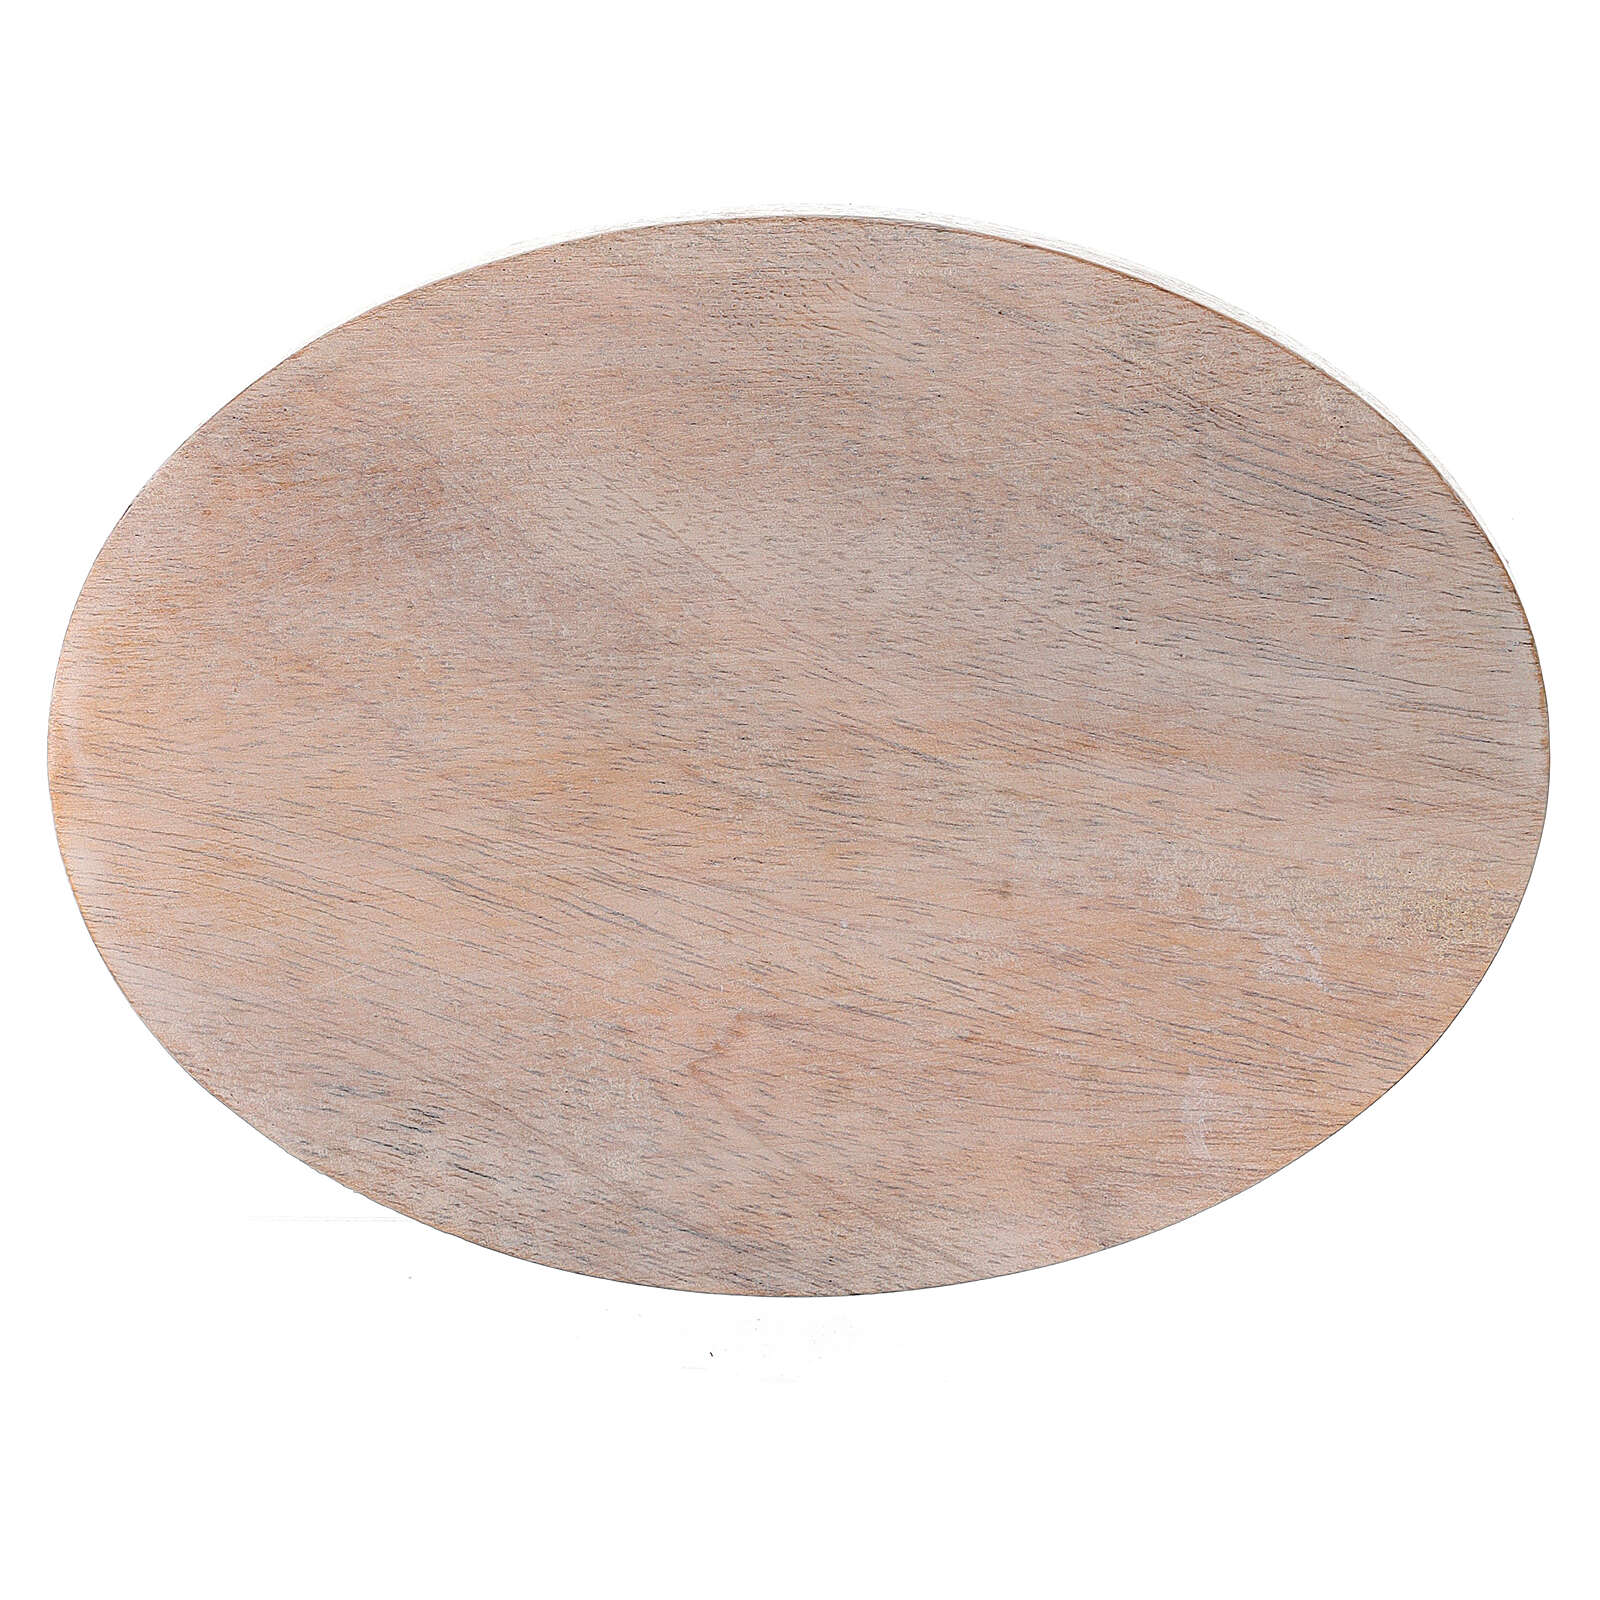 Oval pale mango wood candle holder plate 5 1/4x4 in 3